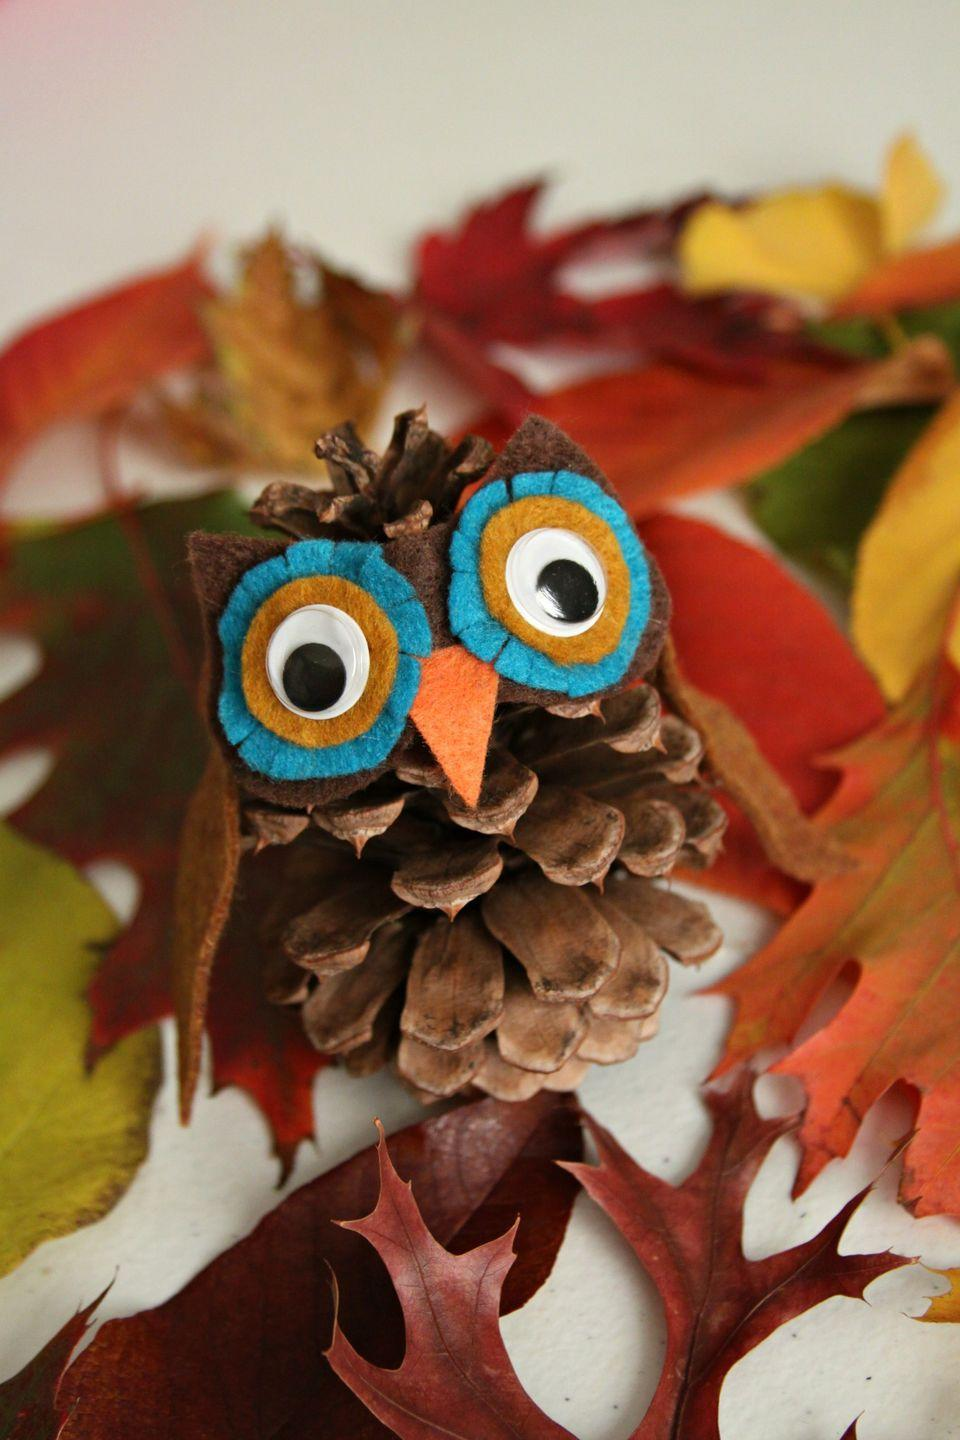 """<p>This craft is a hoot! Kids love gathering pine cones, so give them a way to turn their collection into a wise, old owl.</p><p><em><a href=""""http://www.whimsy-love.com/2013/10/diy-pinecone-owl-hedgehog.html"""" rel=""""nofollow noopener"""" target=""""_blank"""" data-ylk=""""slk:Get the tutorial at Whimsy Love »"""" class=""""link rapid-noclick-resp"""">Get the tutorial at Whimsy Love »</a> </em></p>"""